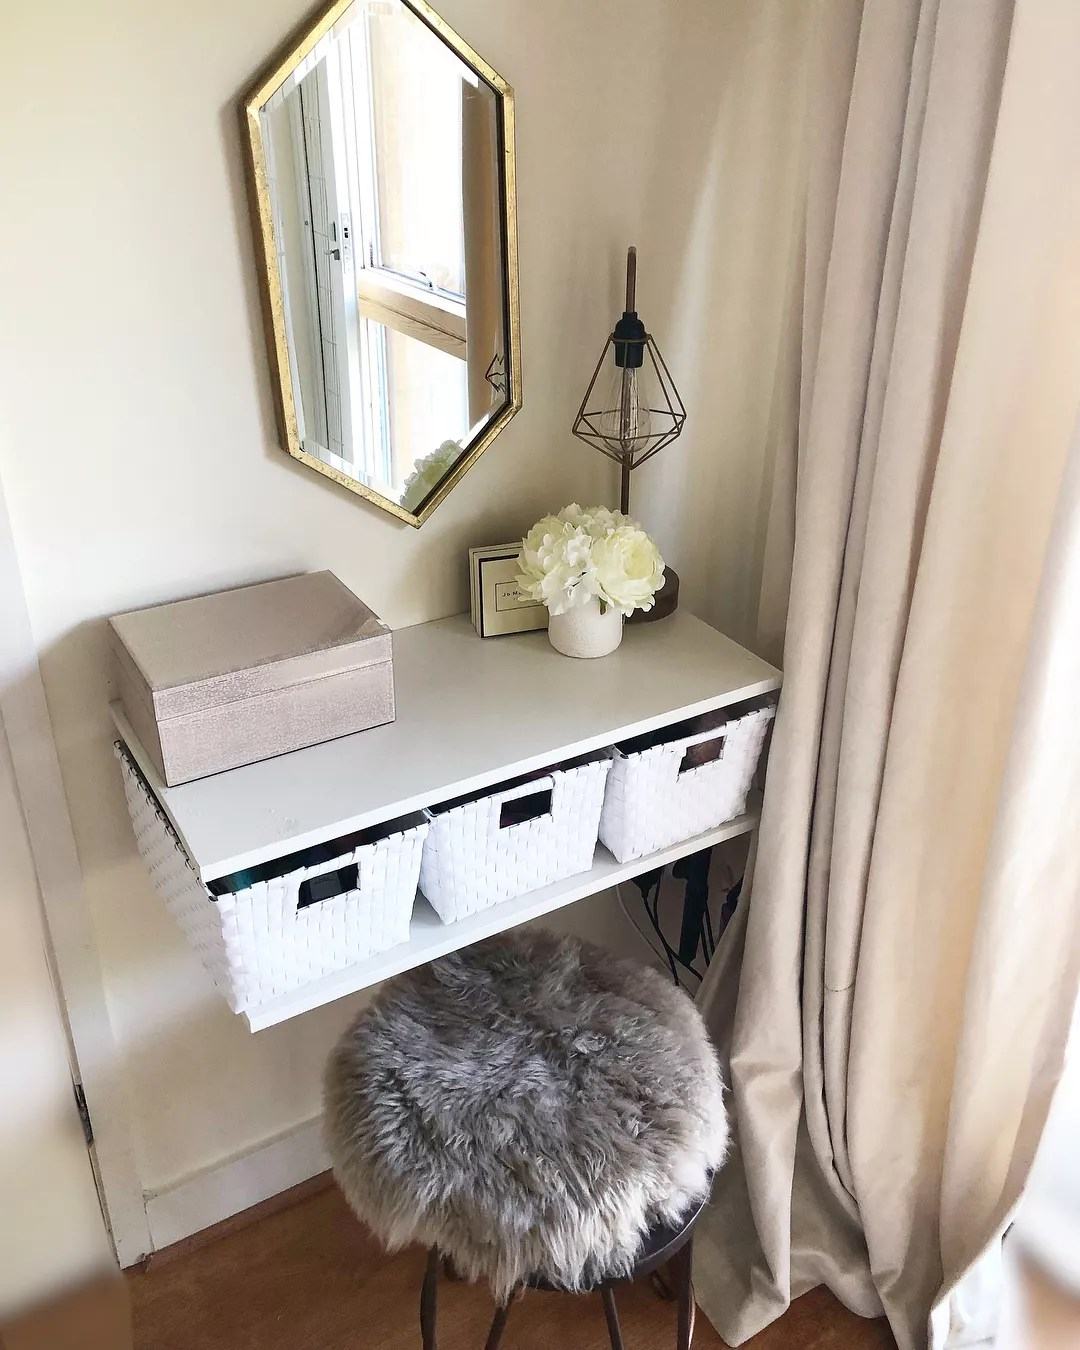 Vanity Set-Up Outside of the Bathroom. Photo by Instagram user @dalyfashionfix